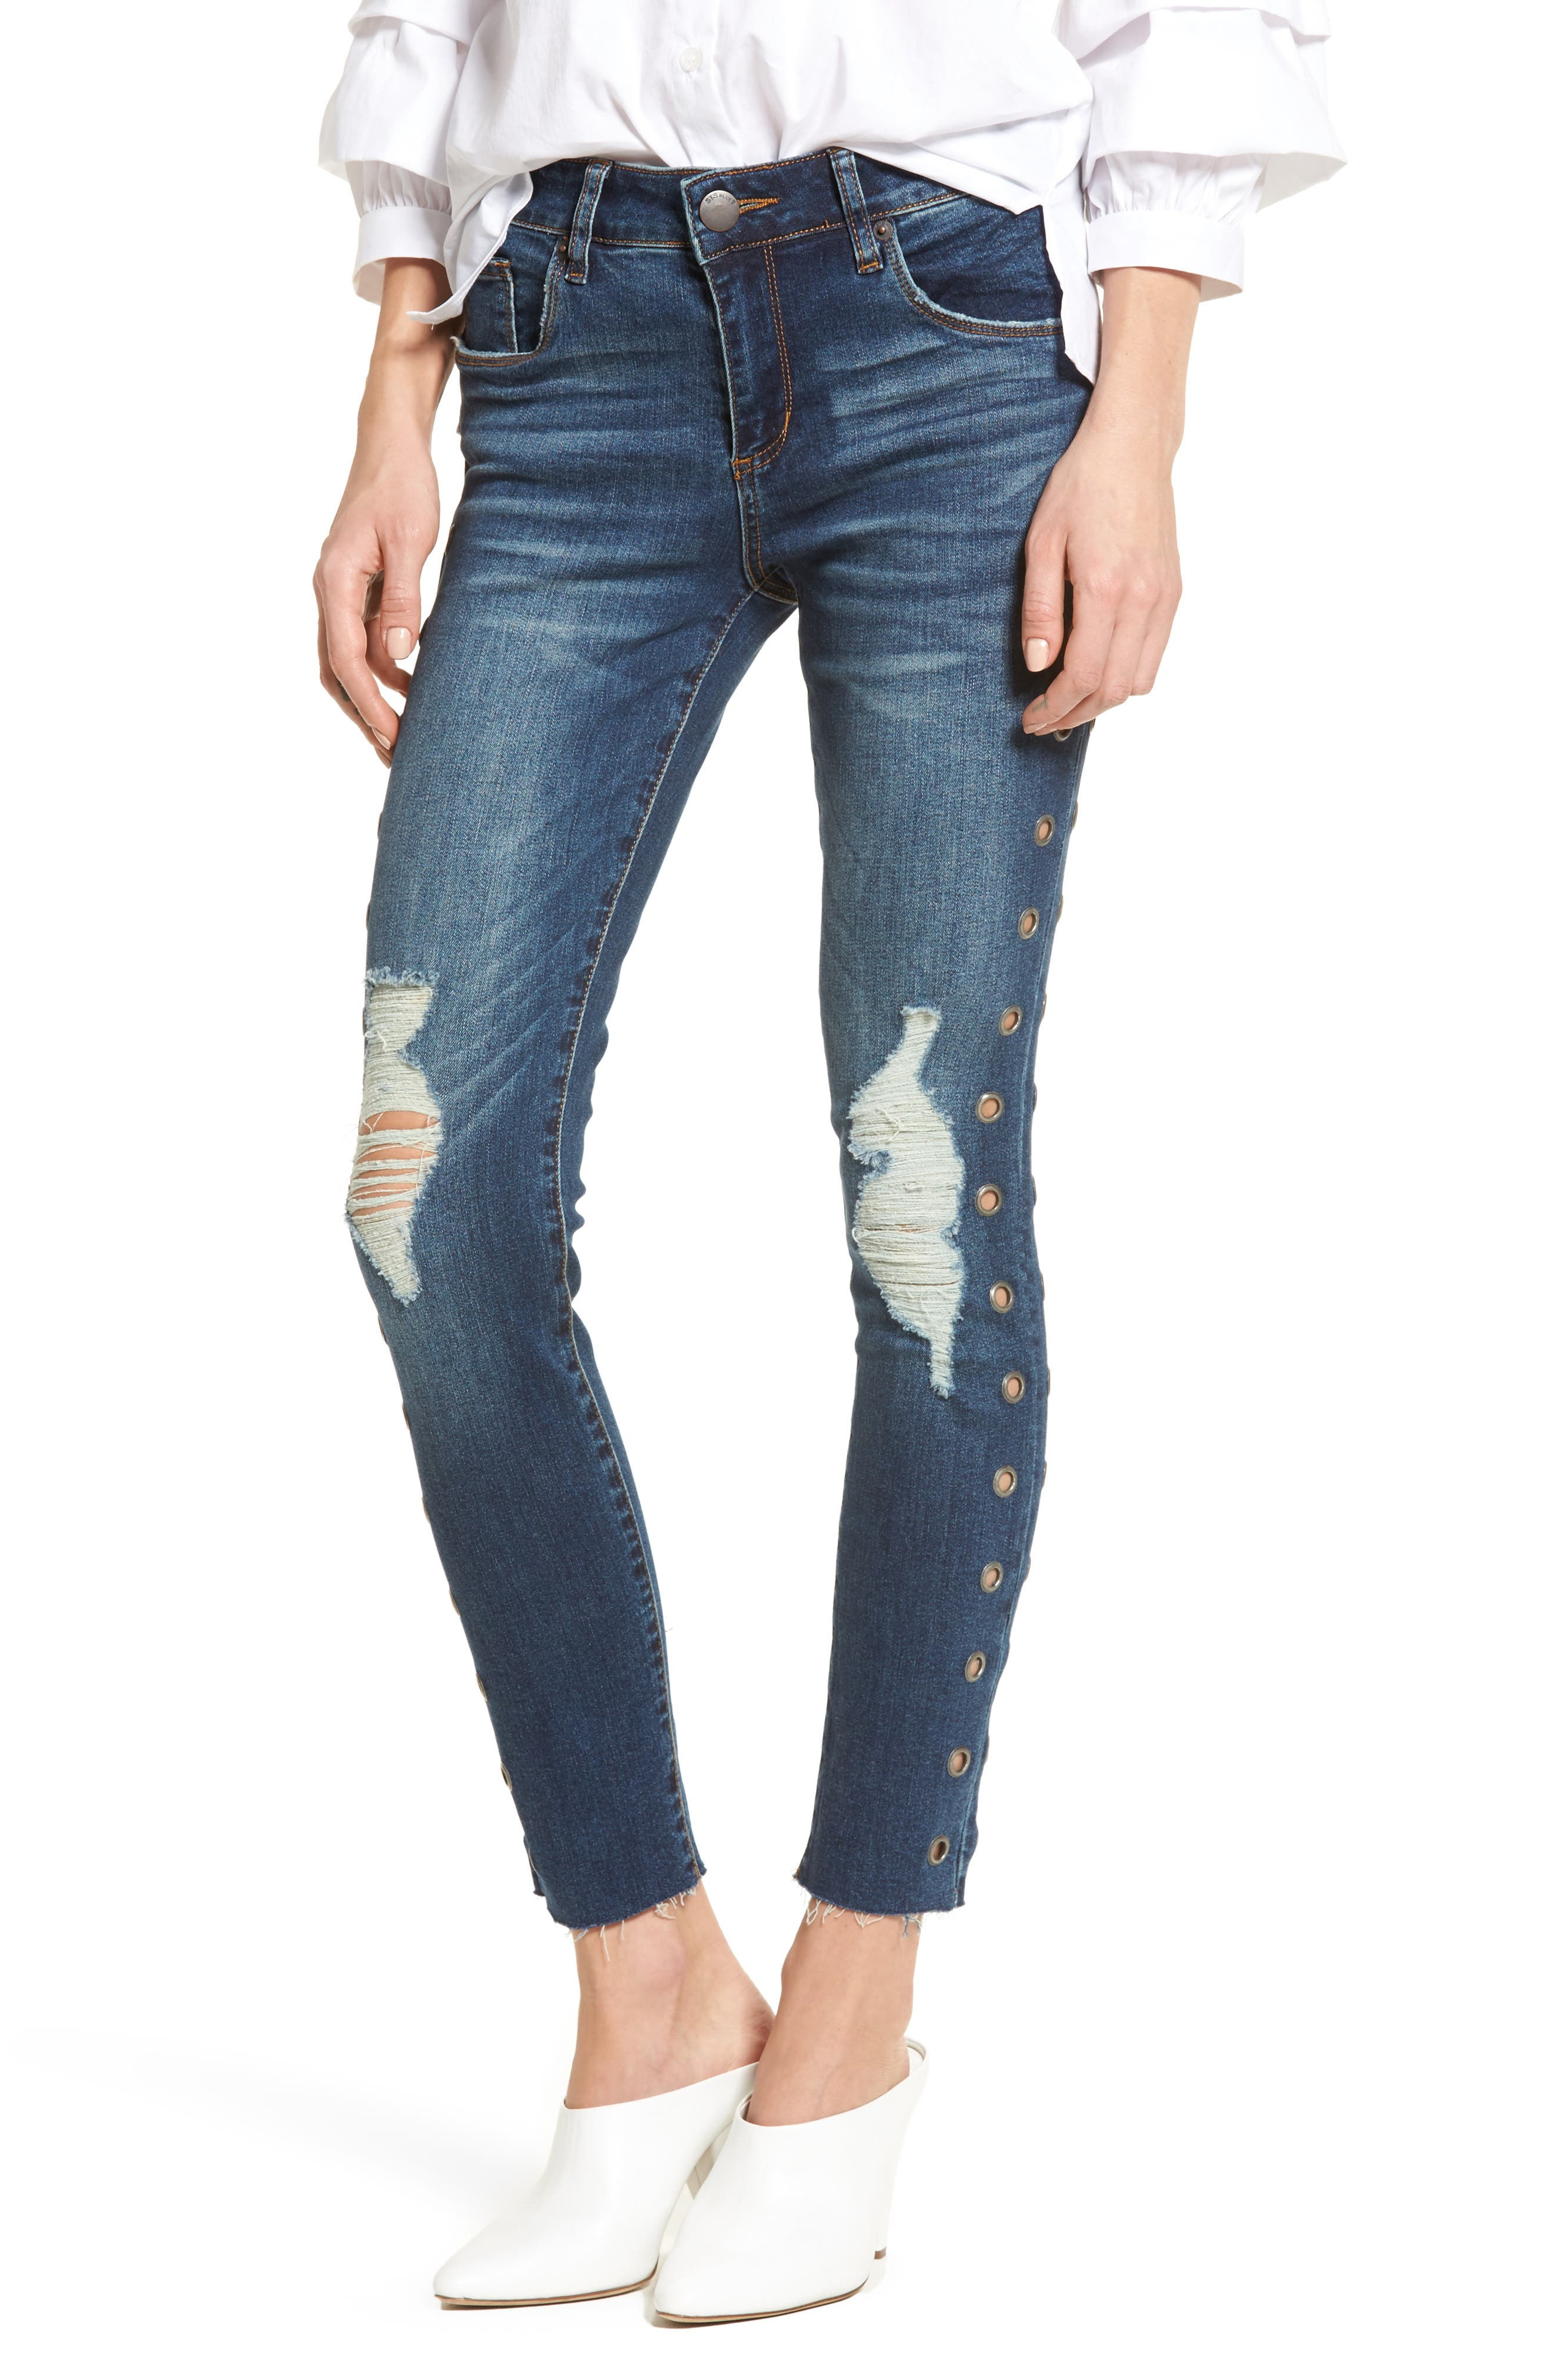 Piper Grommet Detail Skinny Jeans,                         Main,                         color, 400